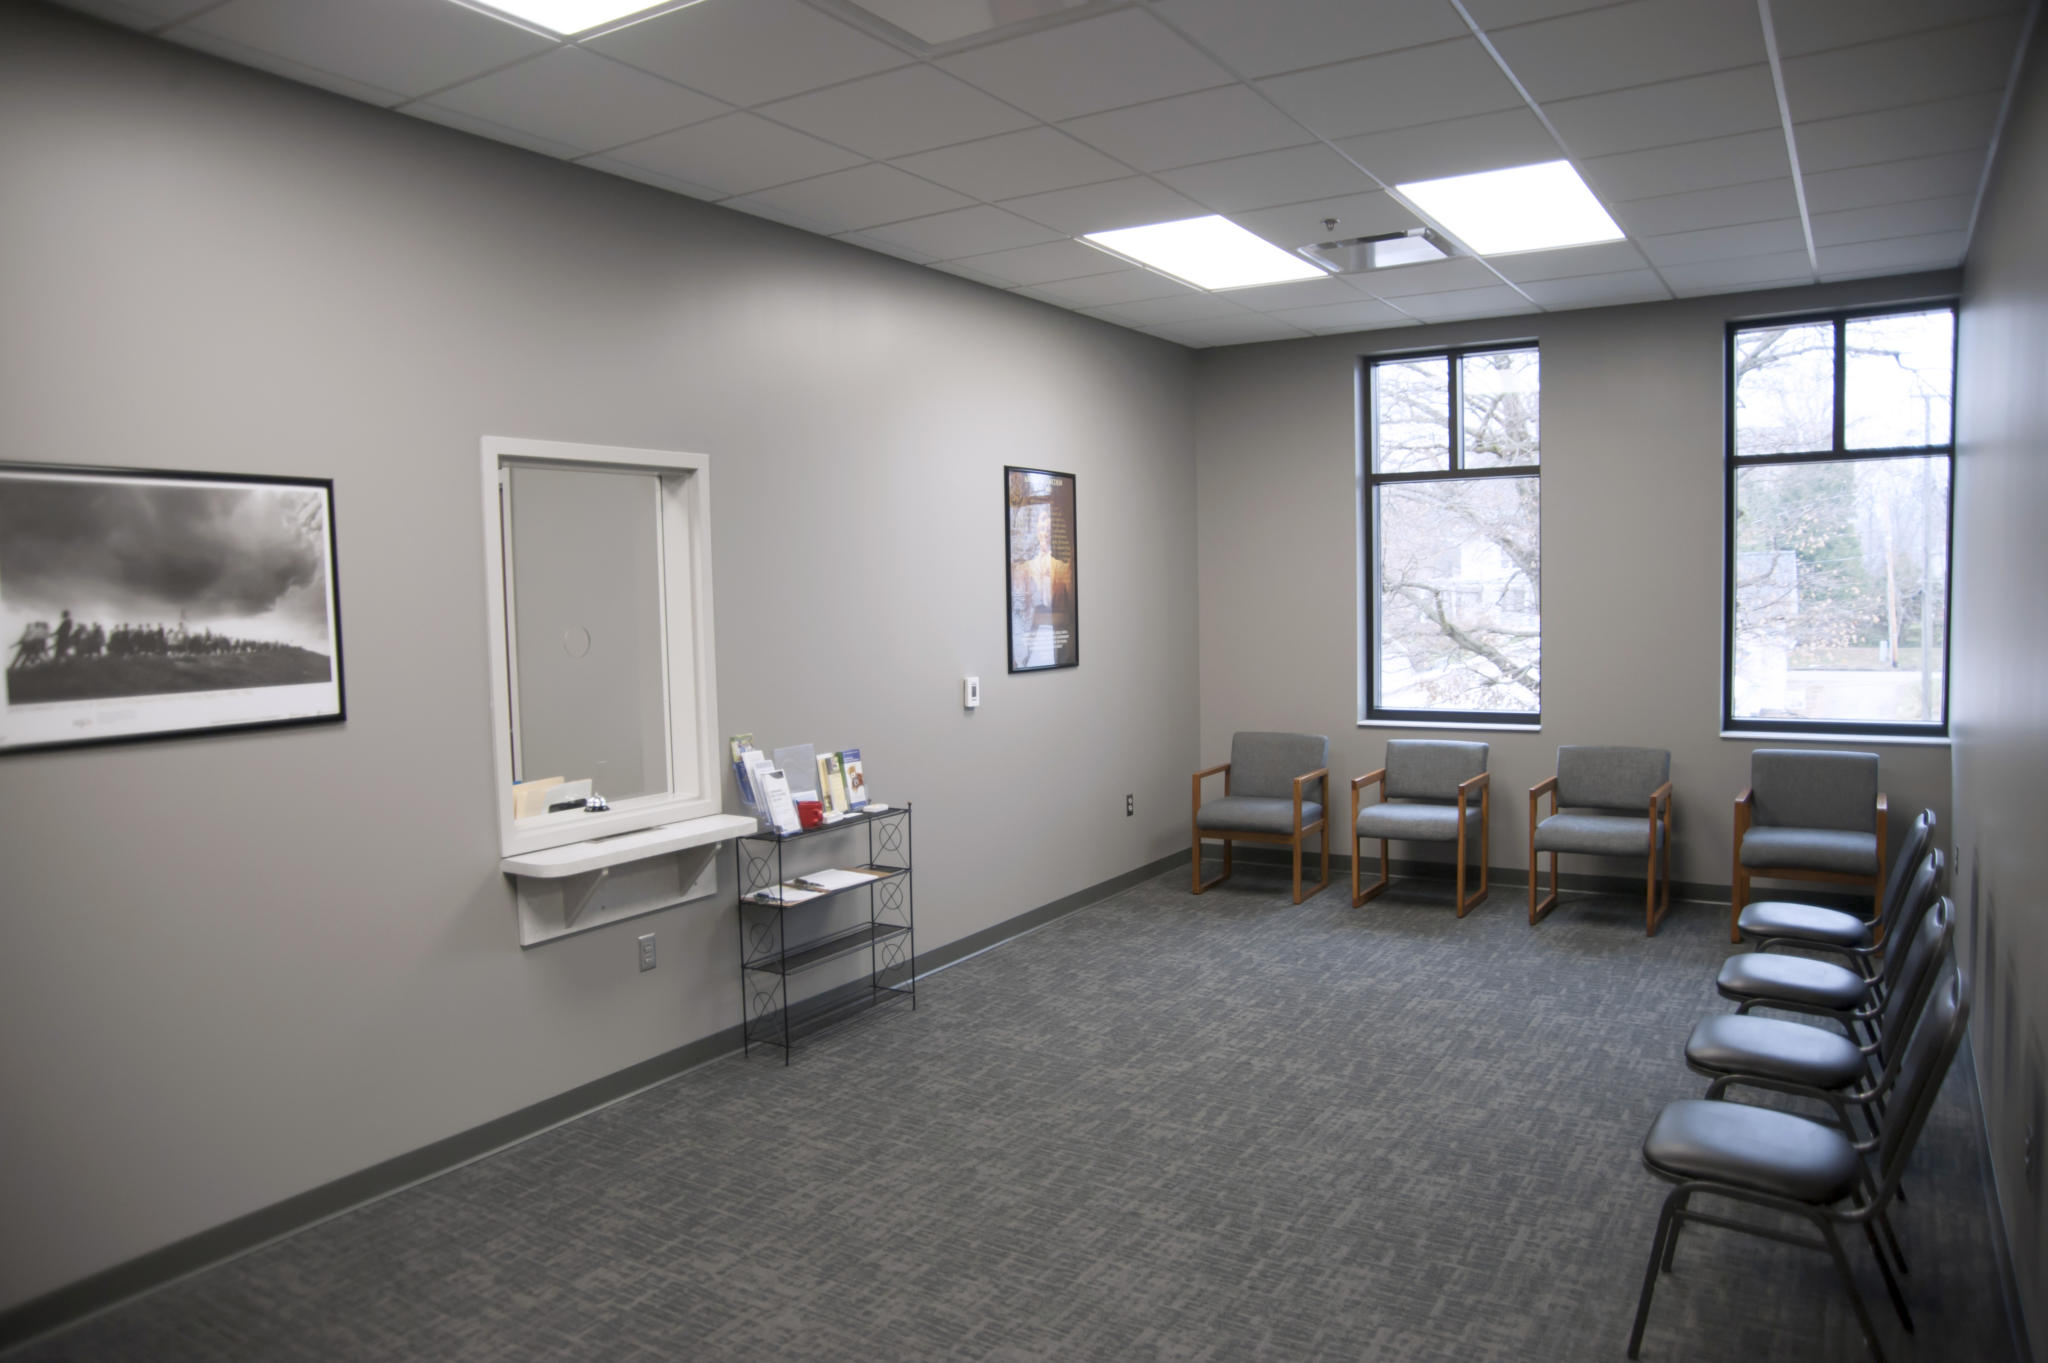 image of waiting room